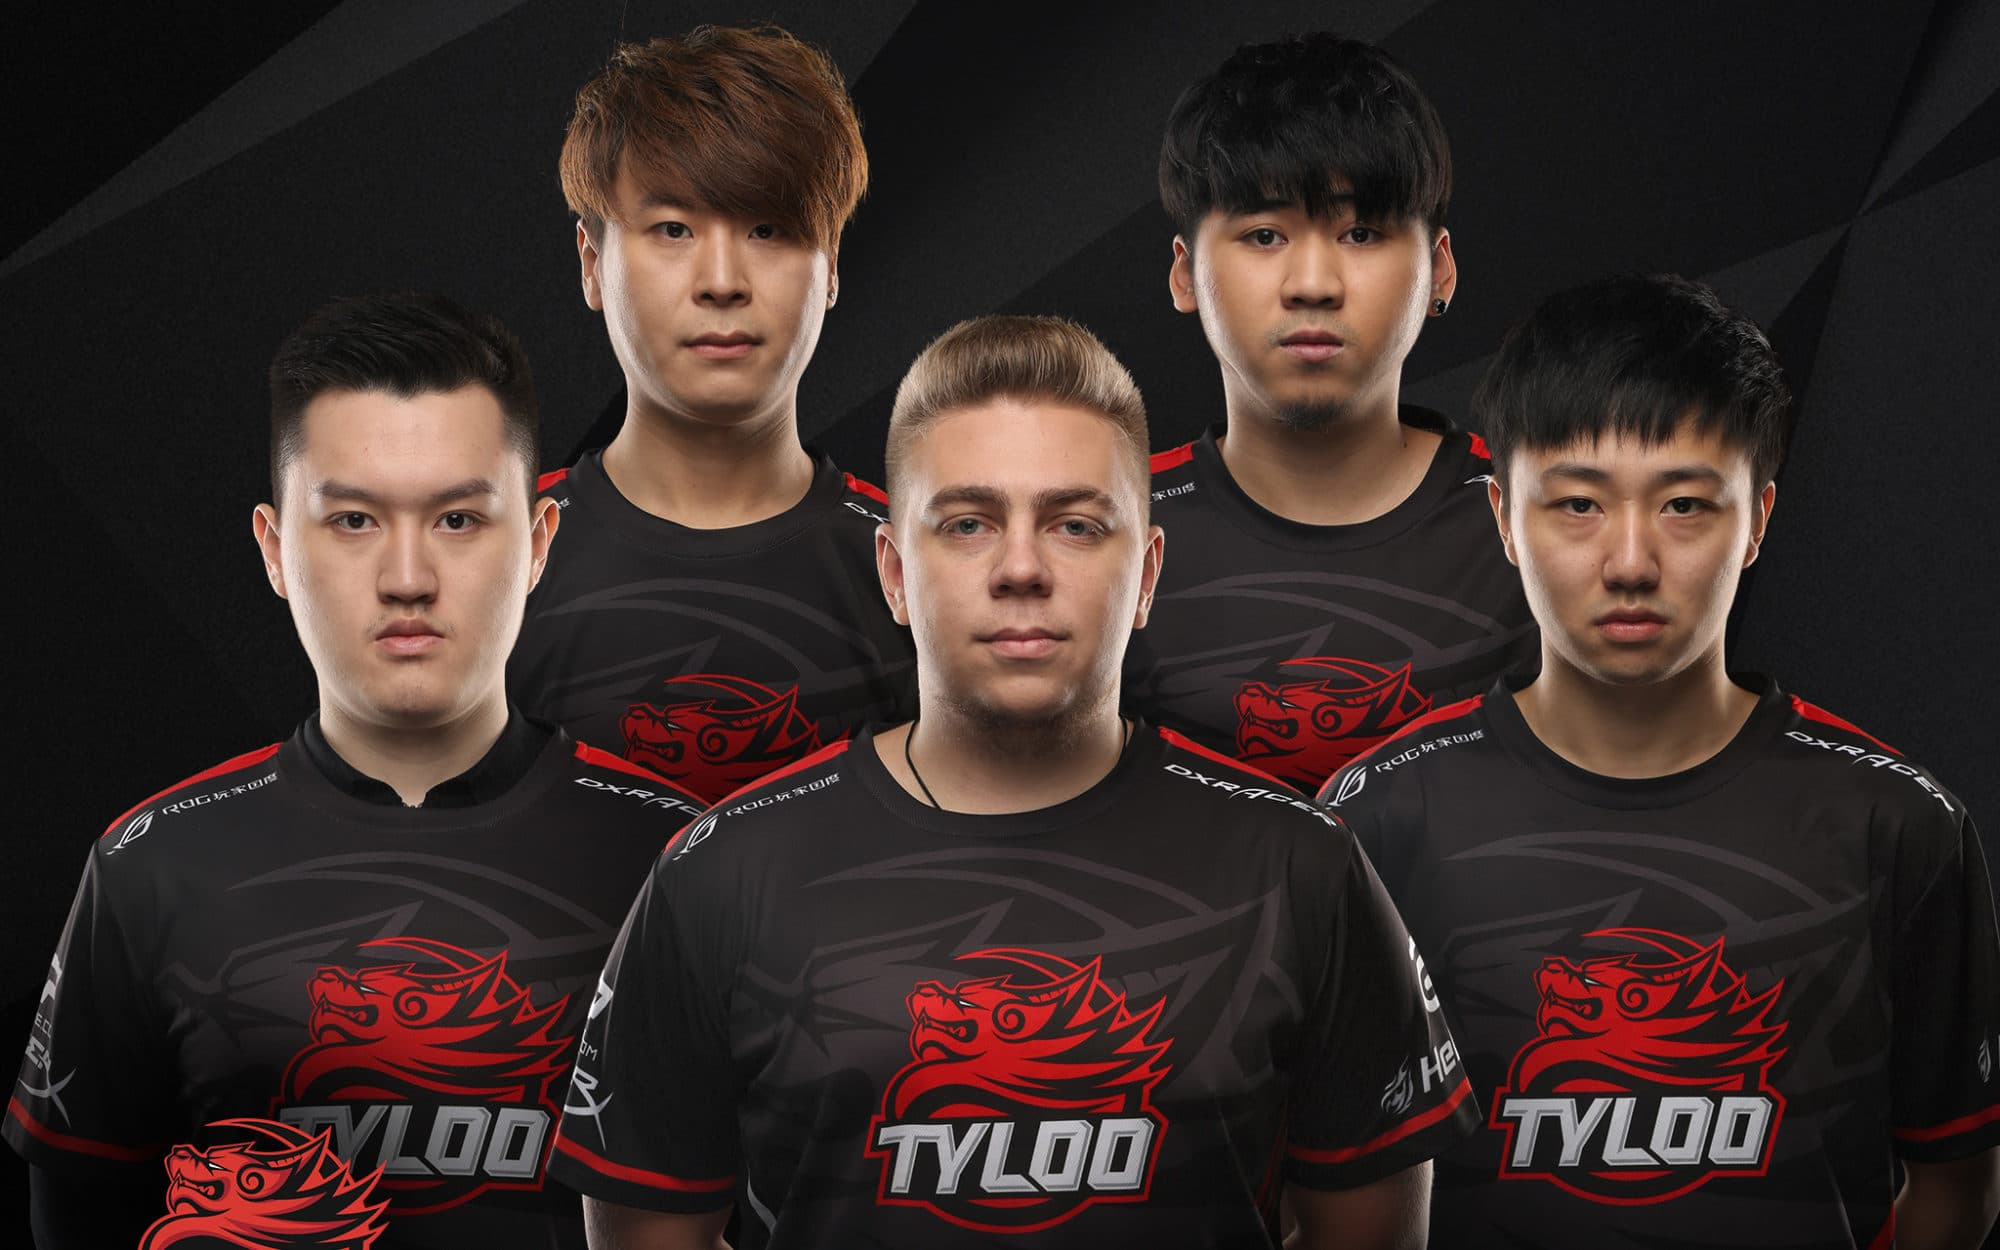 TYLOO CS:GO Pro Team Joins GeForce Esports Roster | The ...